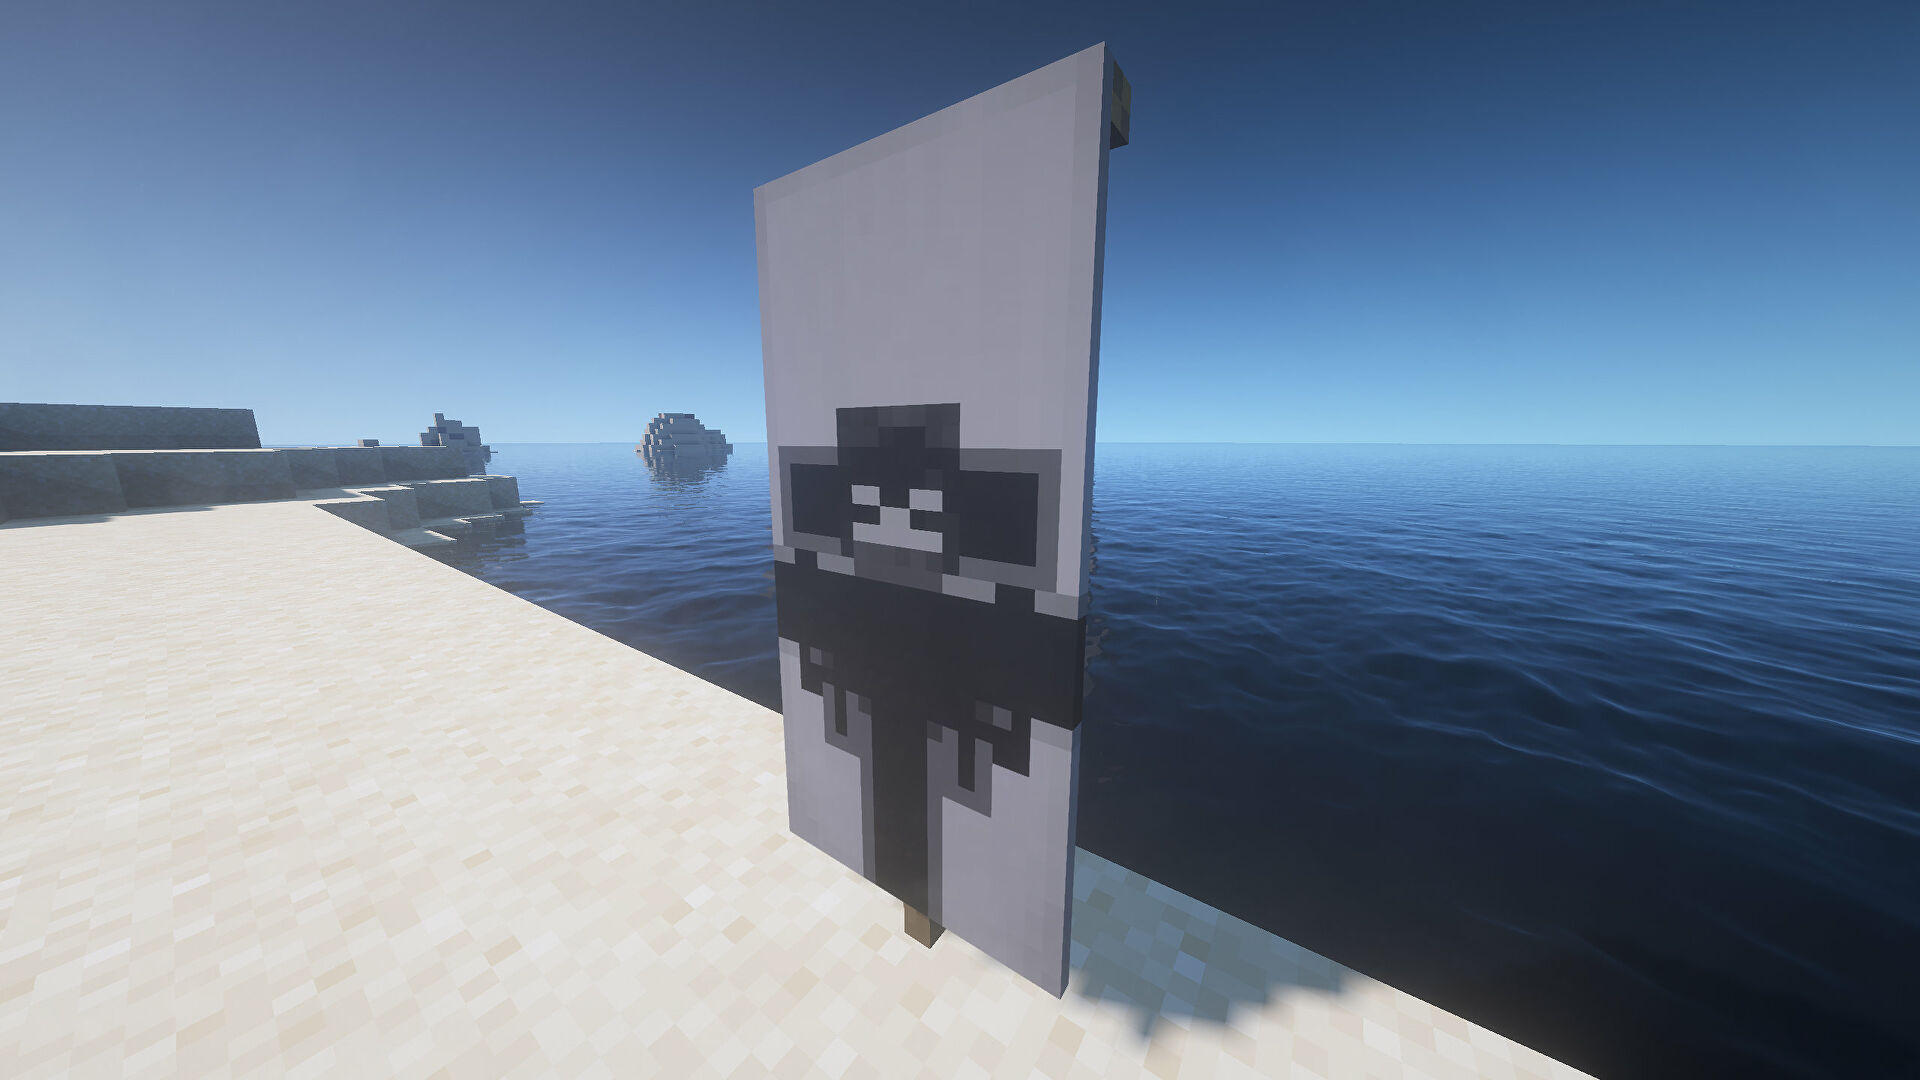 A planet Banner in Minecraft, placed in the ground by the coast.